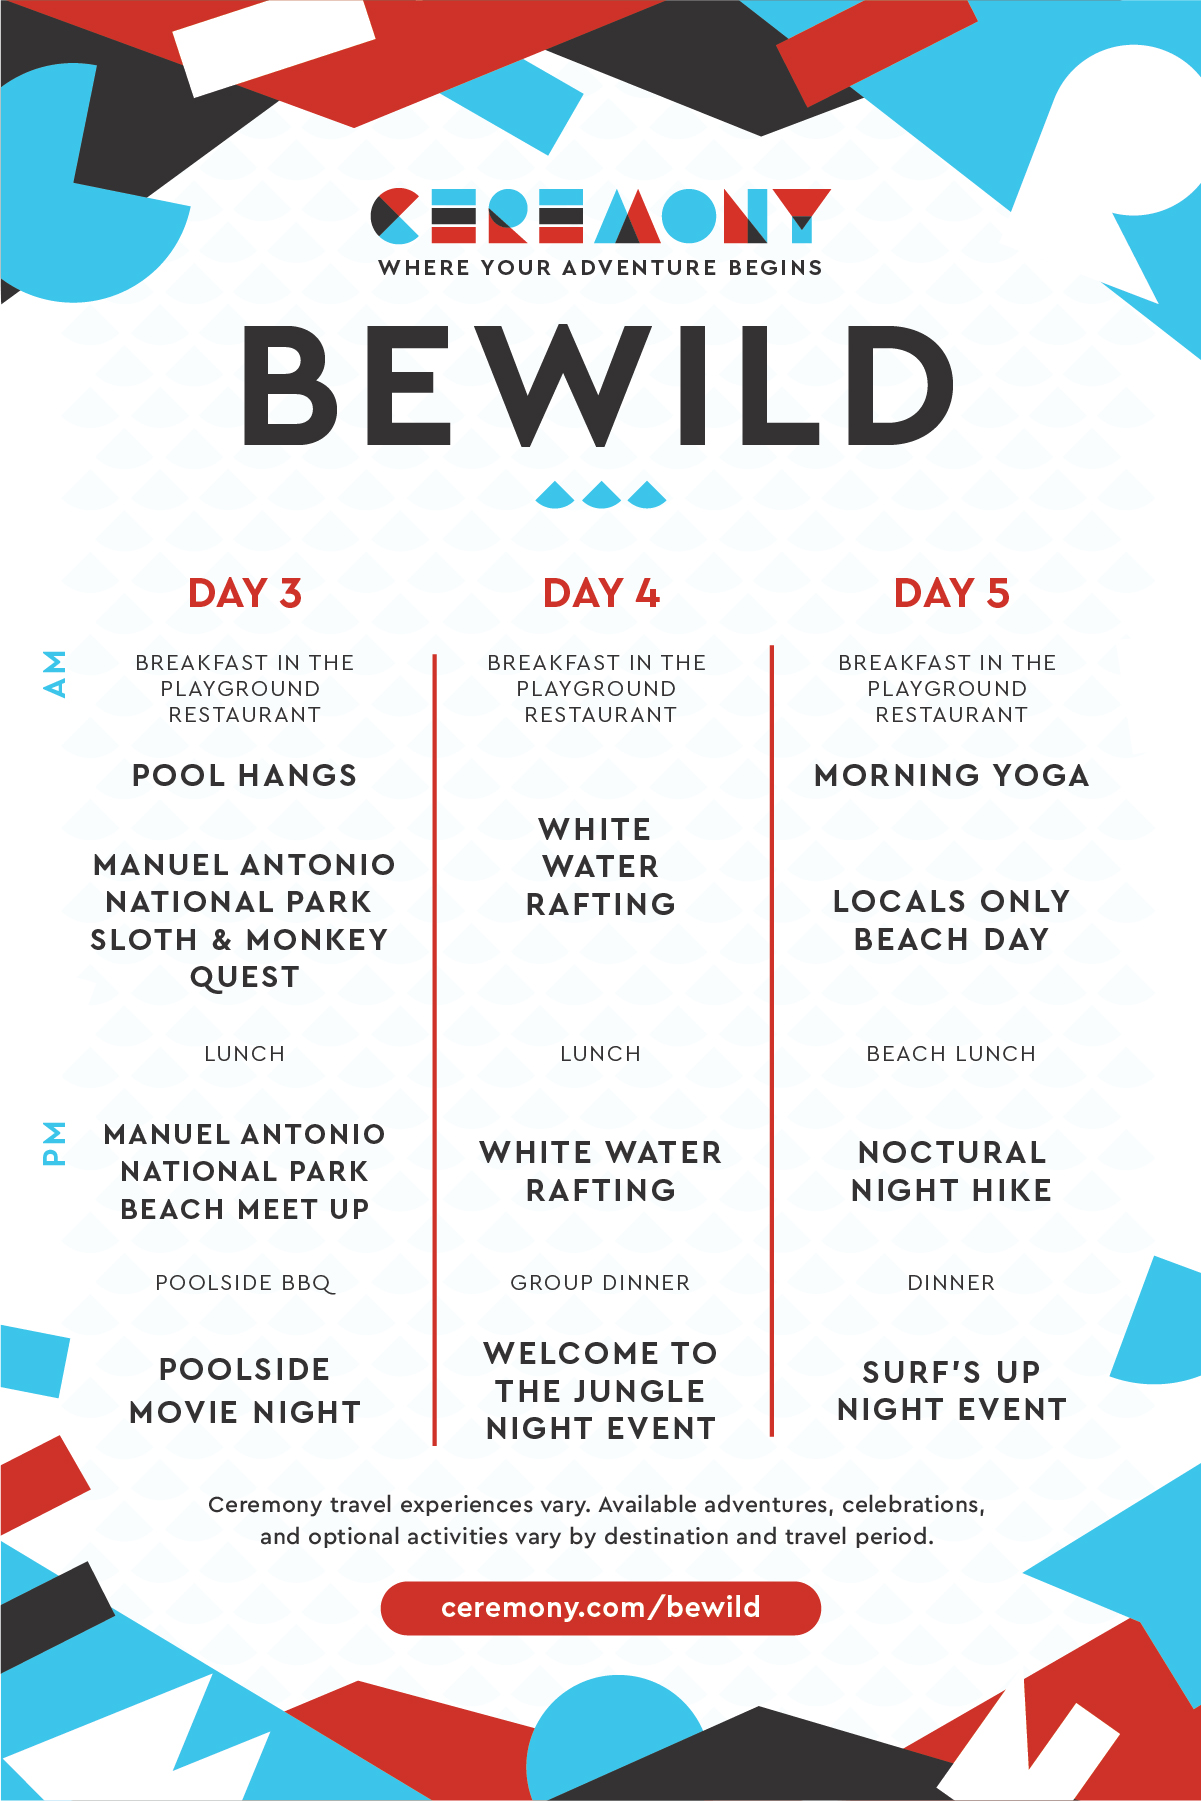 Ceremony-travel-itinerary-schedule-example-review-BeWild.jpg